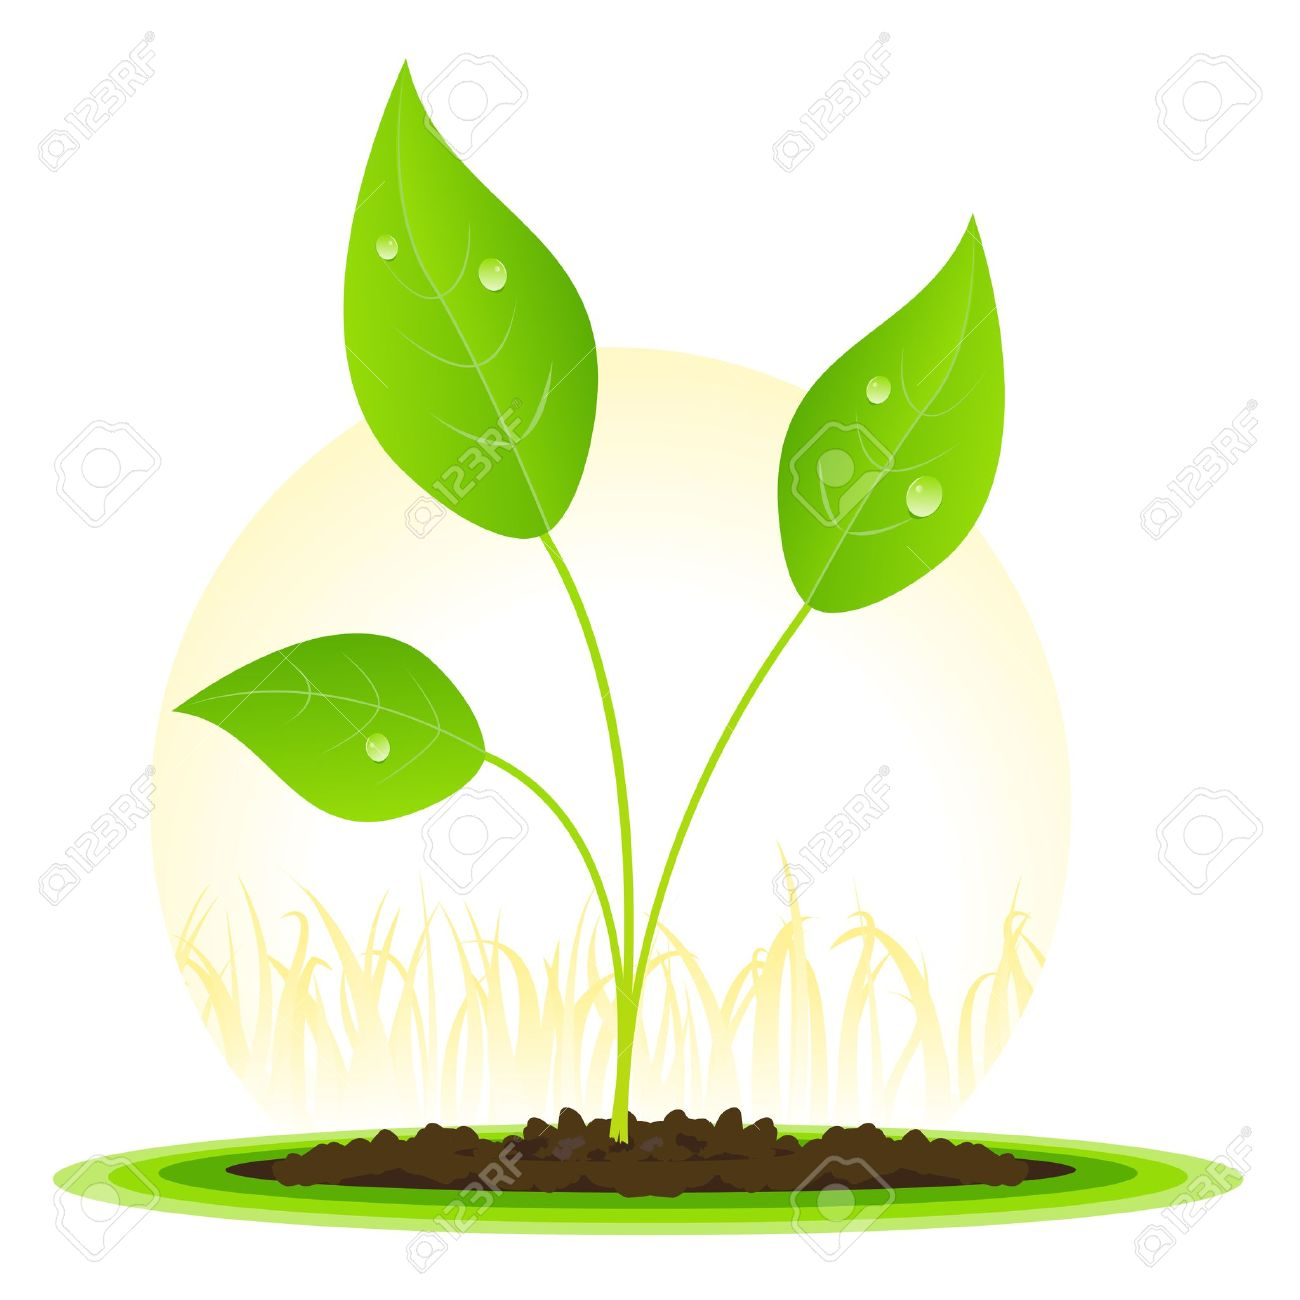 Seed clipart animated Excellent Seeds Design H Seeds